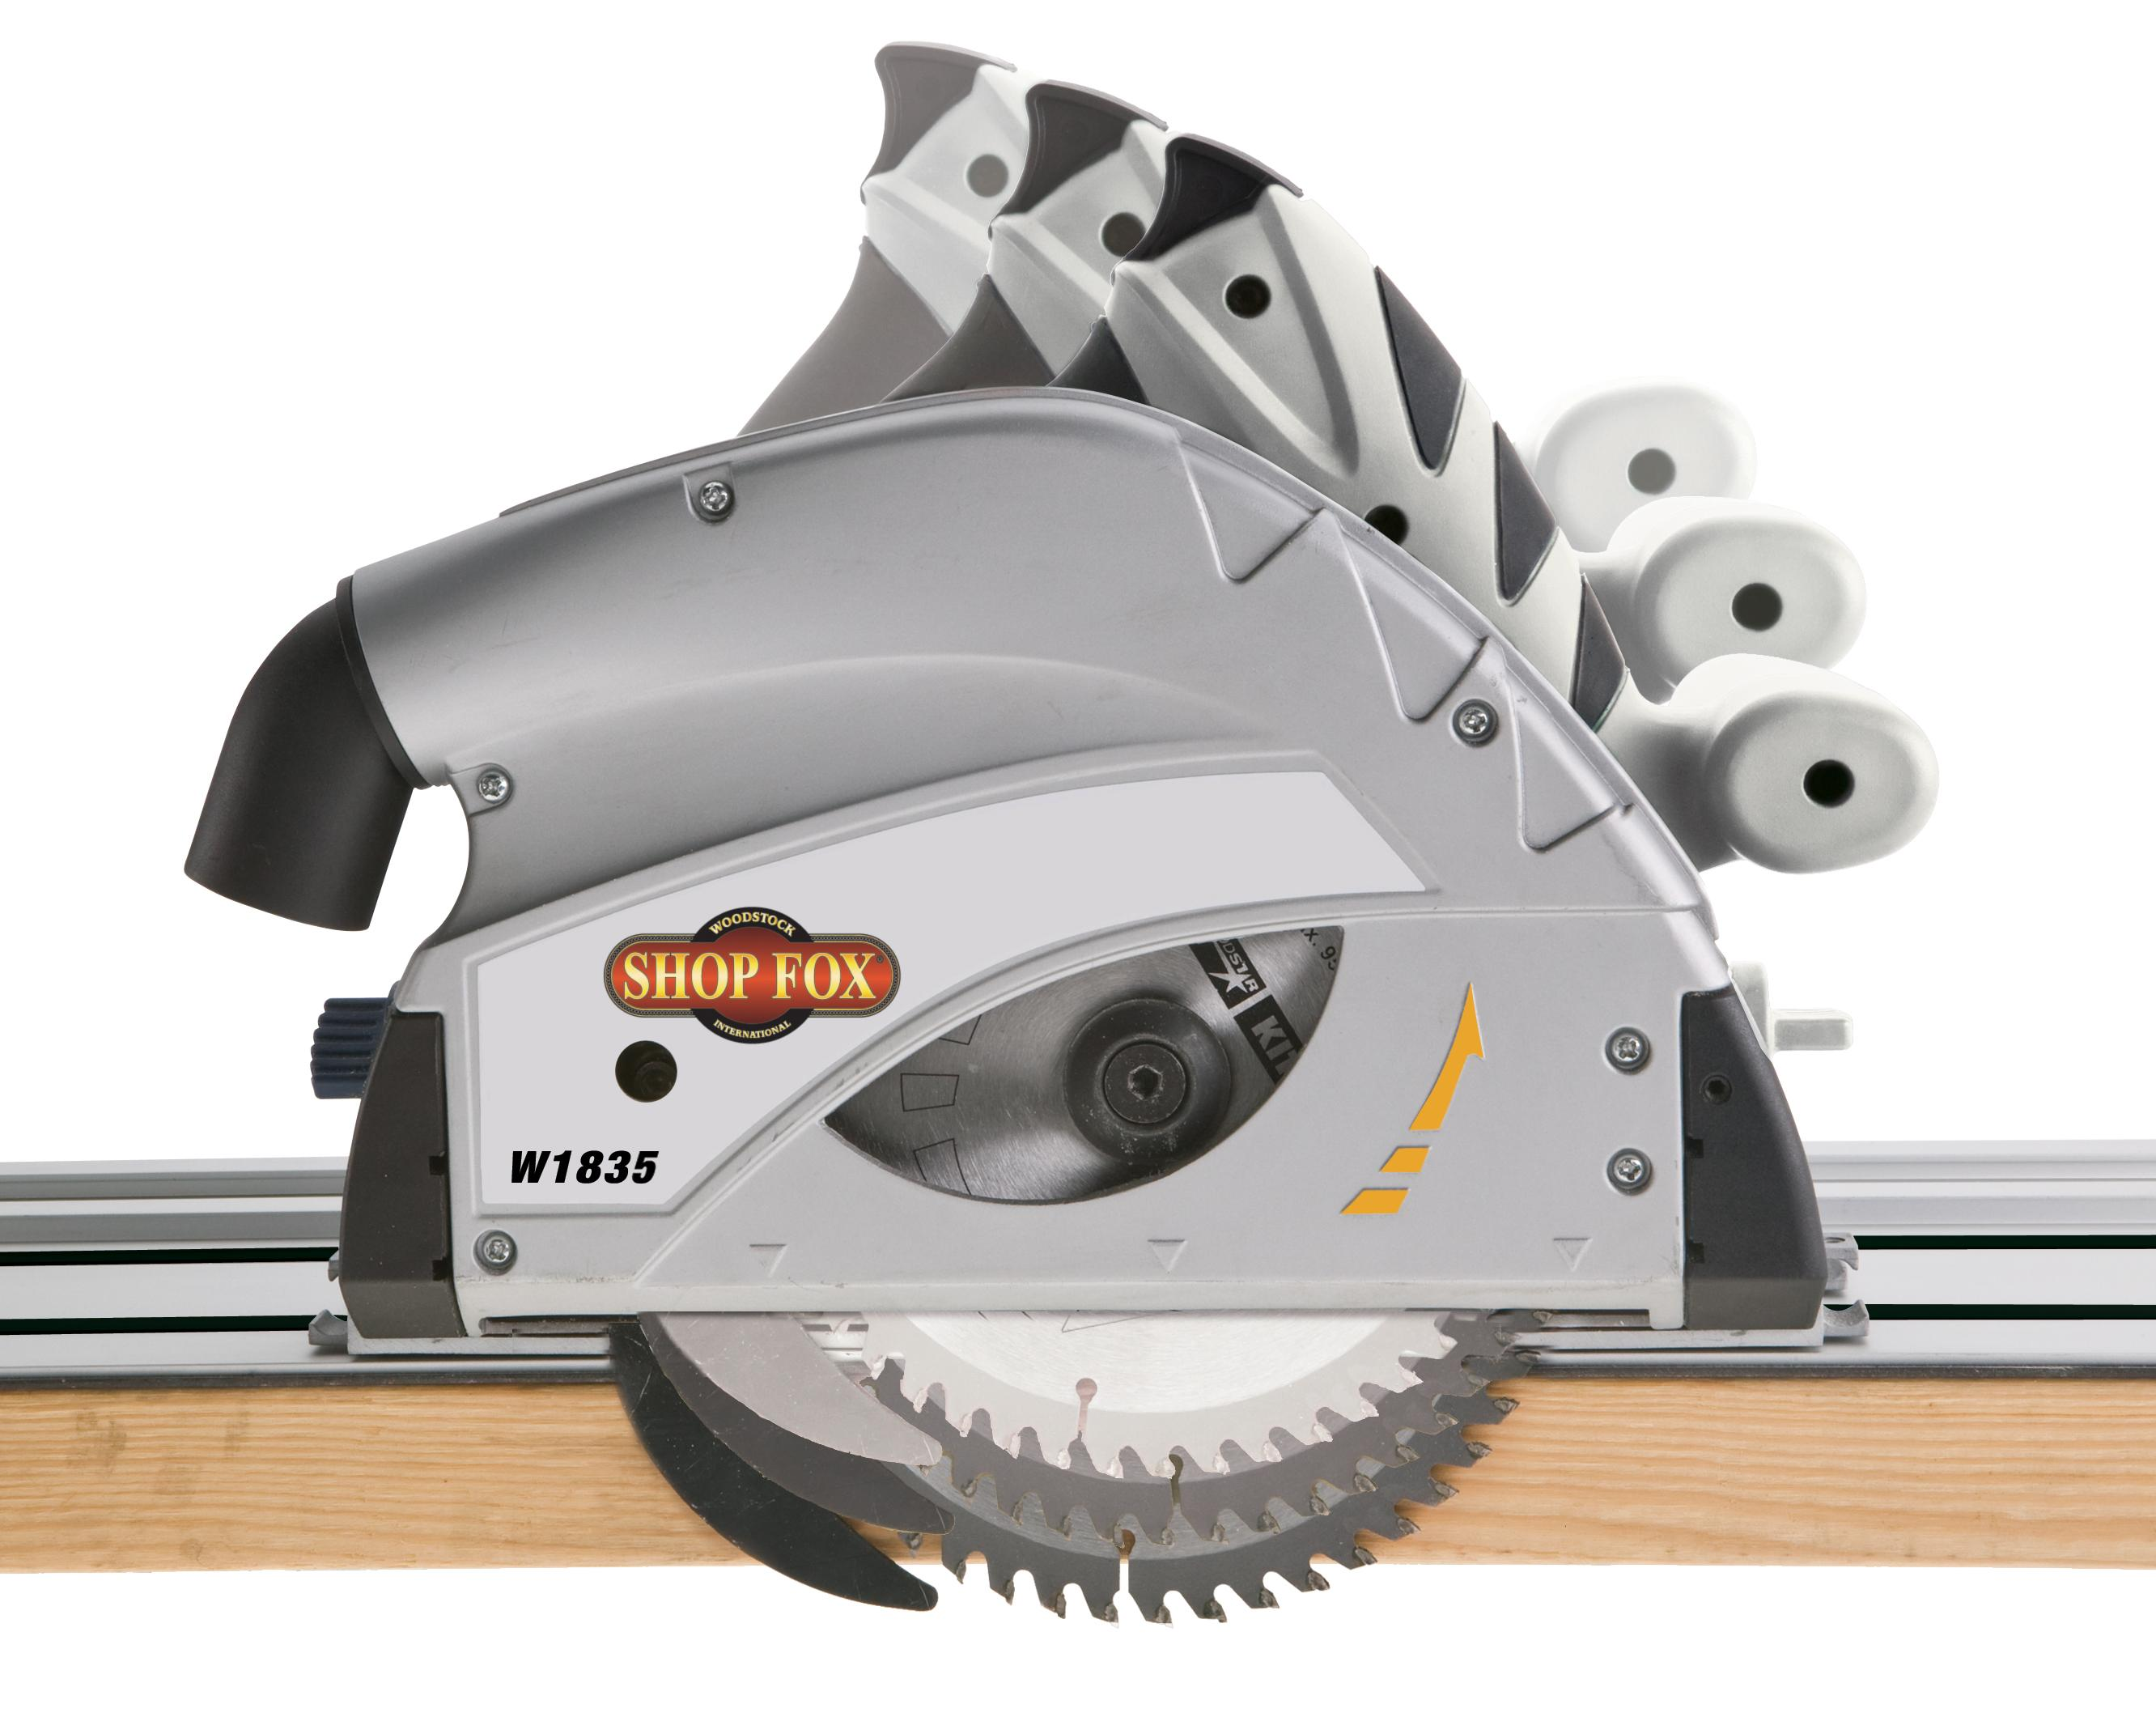 Shop fox w1835 track saw power circular saws amazon view larger greentooth Images